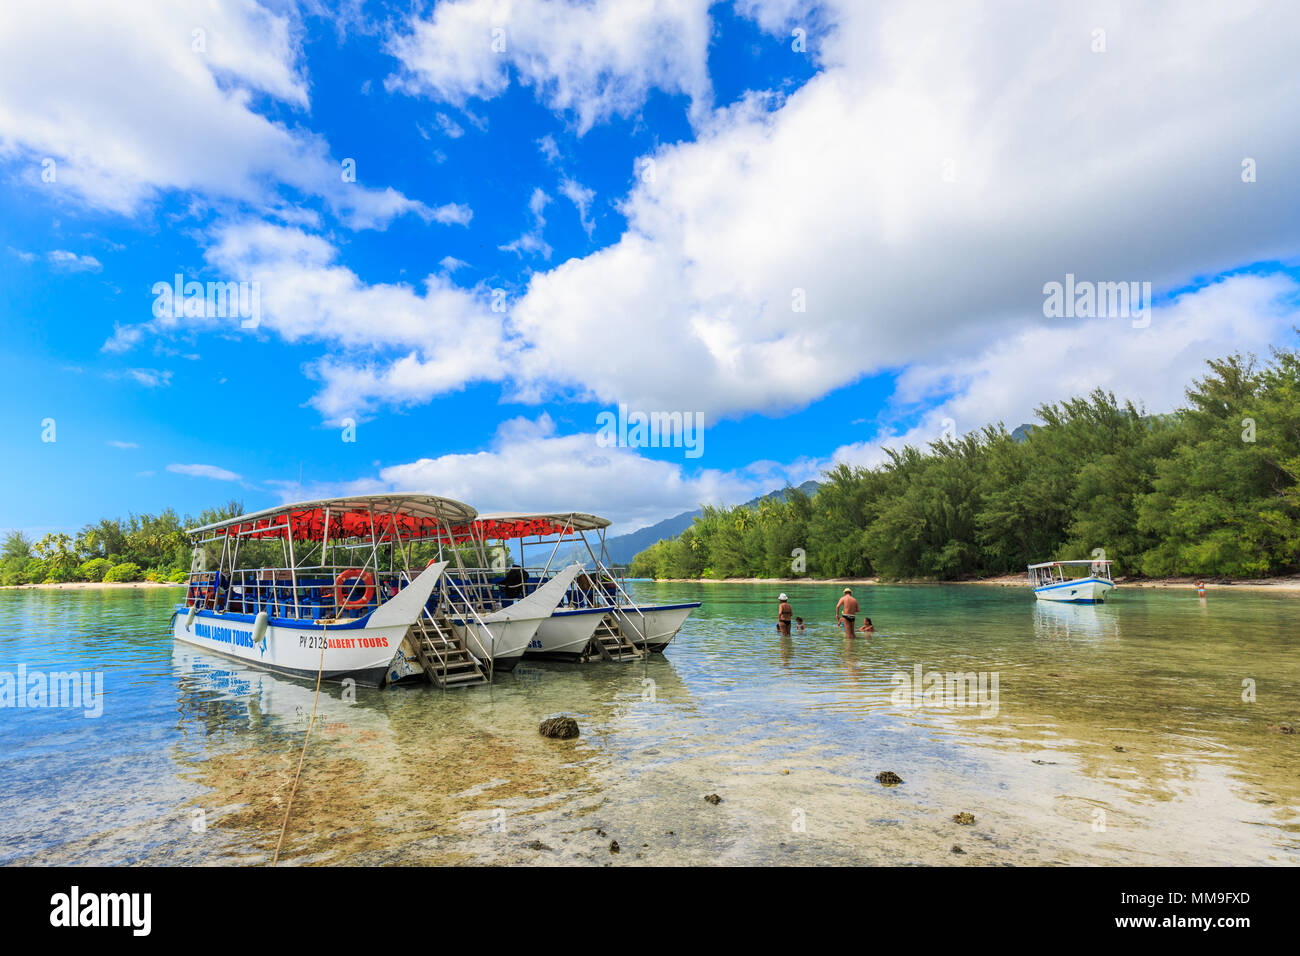 TAHITI, FRENCH POLYNESIA – AUGUST 23, 2017 : The tourists and passenger boat in Moorea Island at Tahiti PAPEETE, FRENCH POLYNESIA. - Stock Image